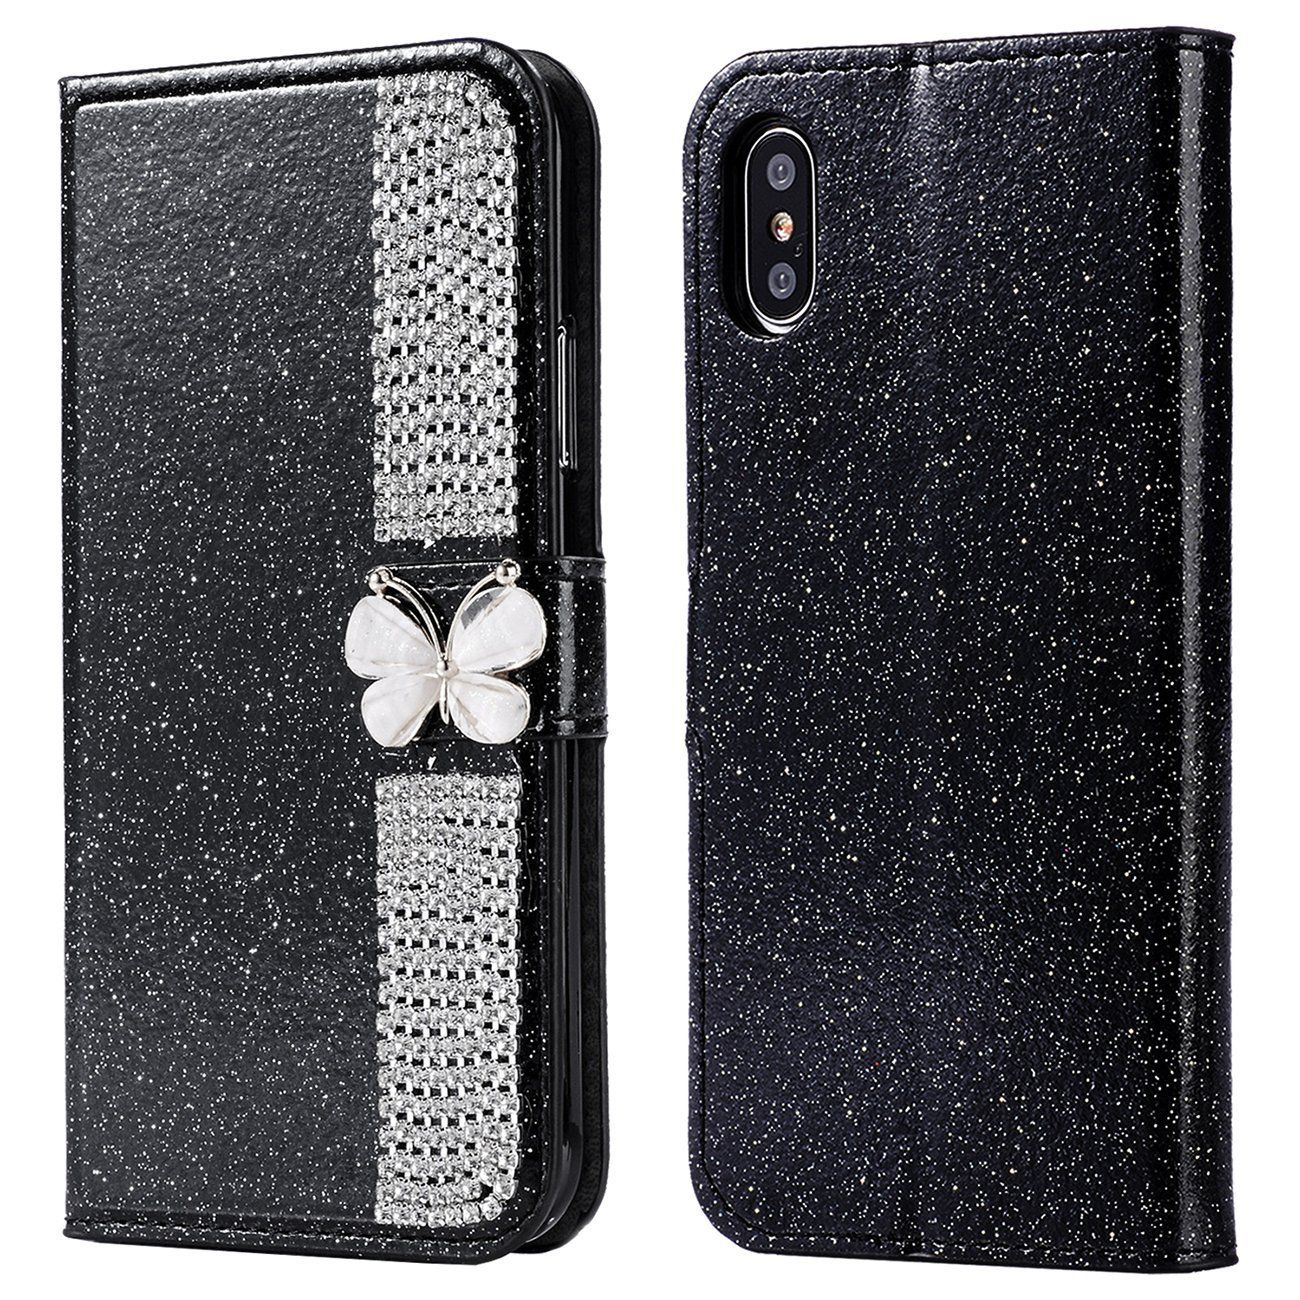 Iphone X Case bd66abae9